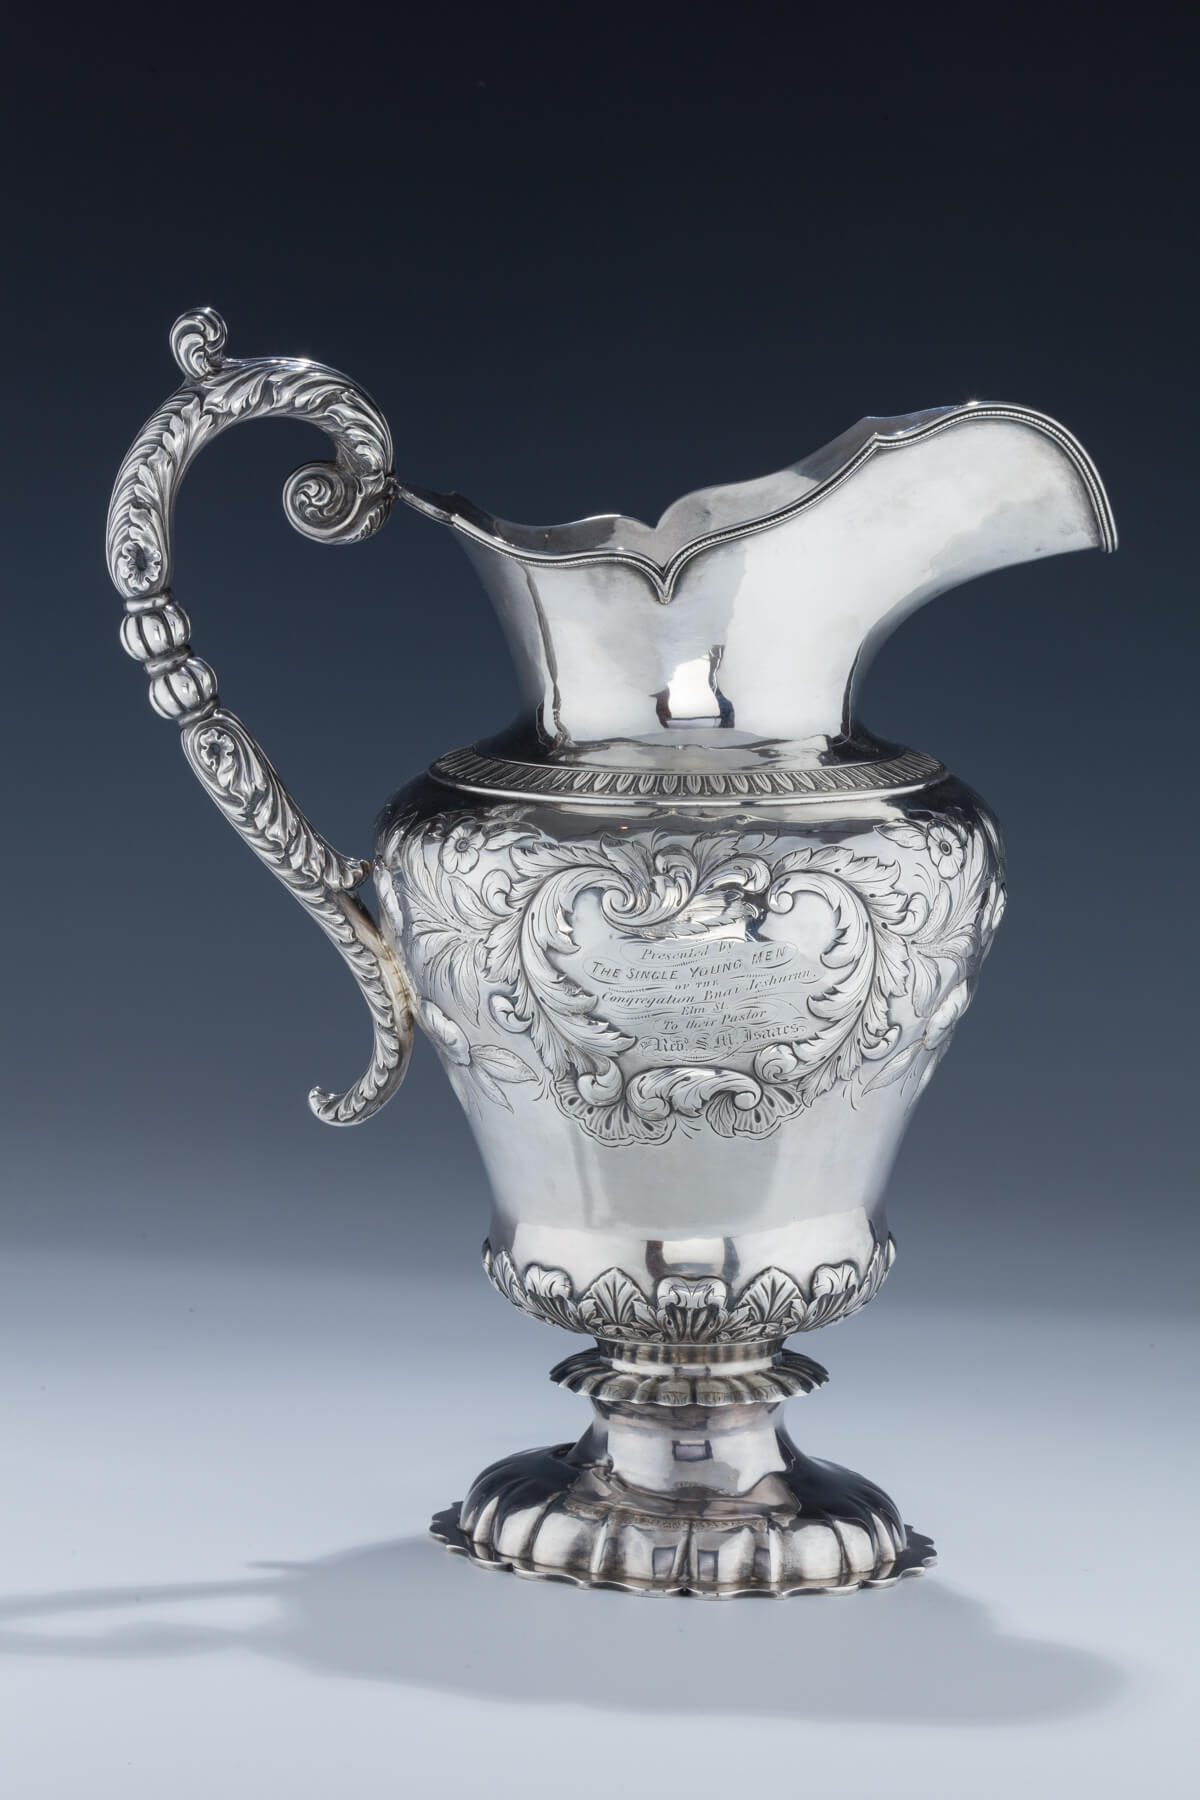 136. A Rare and Important Presentation Water Pitcher by Gale Wood and Hughes